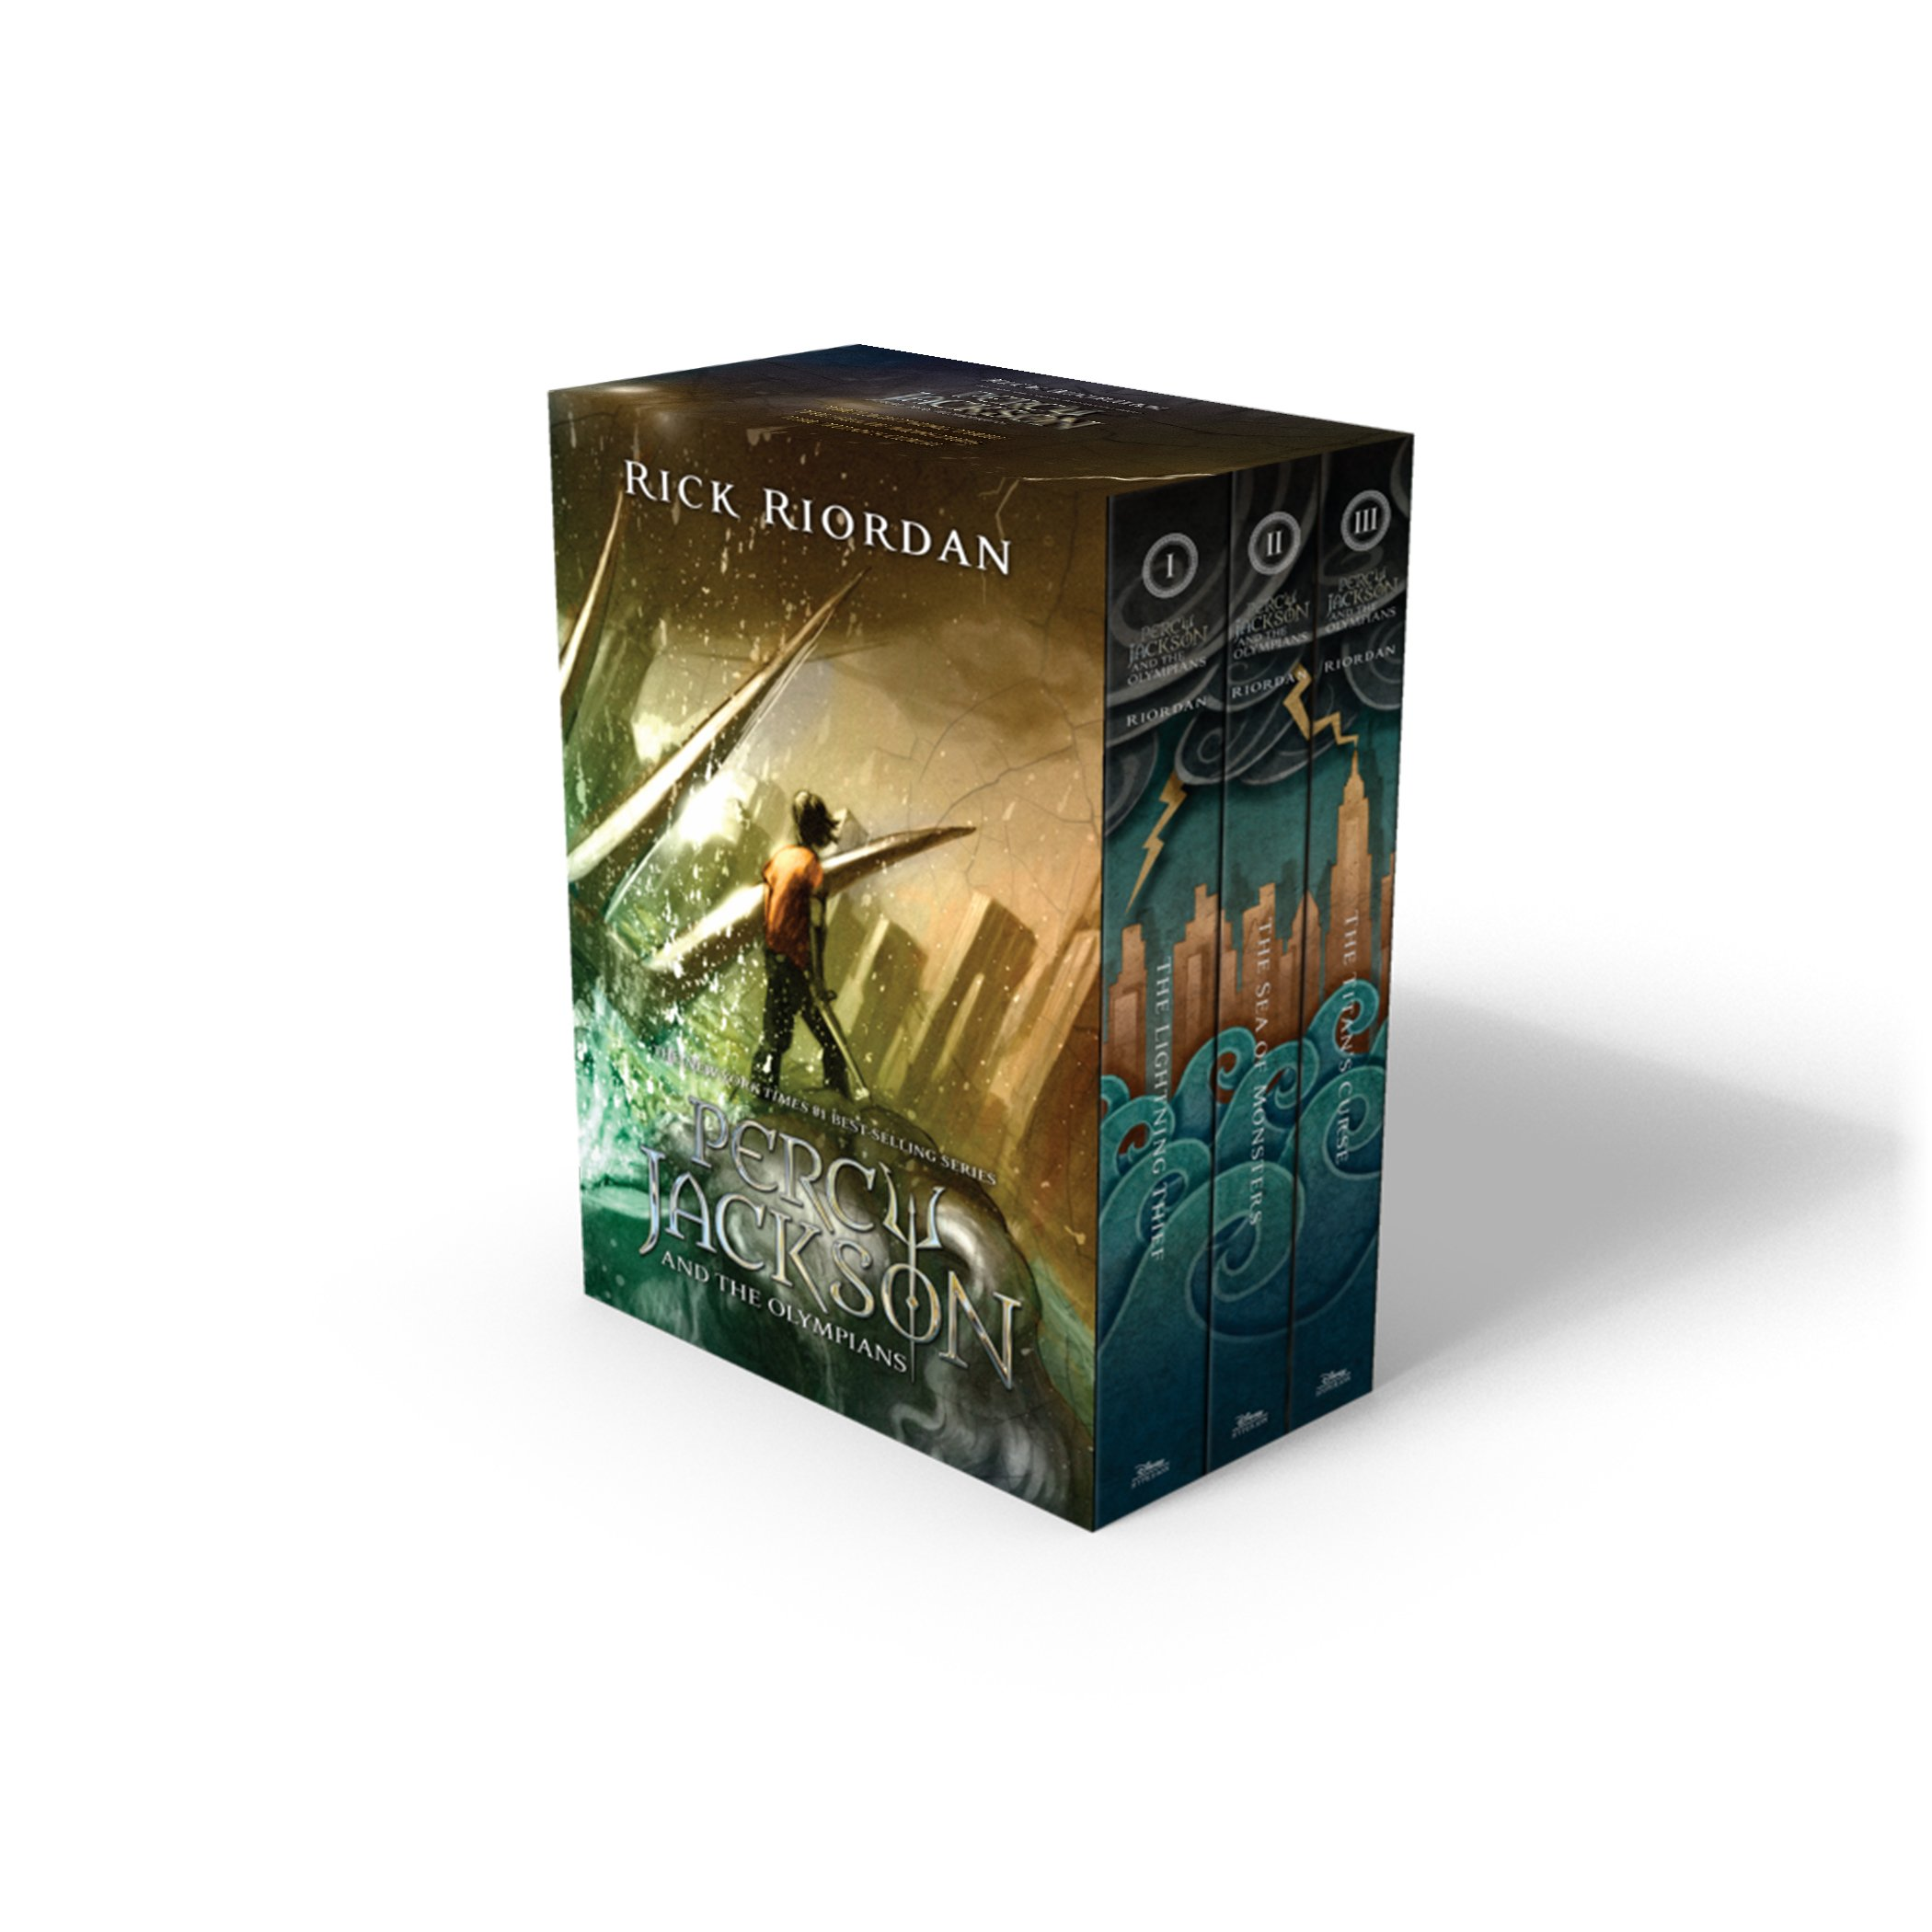 Percy Jackson and the Olympians 3 Book Paperback Boxed Set with new covers (Percy Jackson & the Olympians)